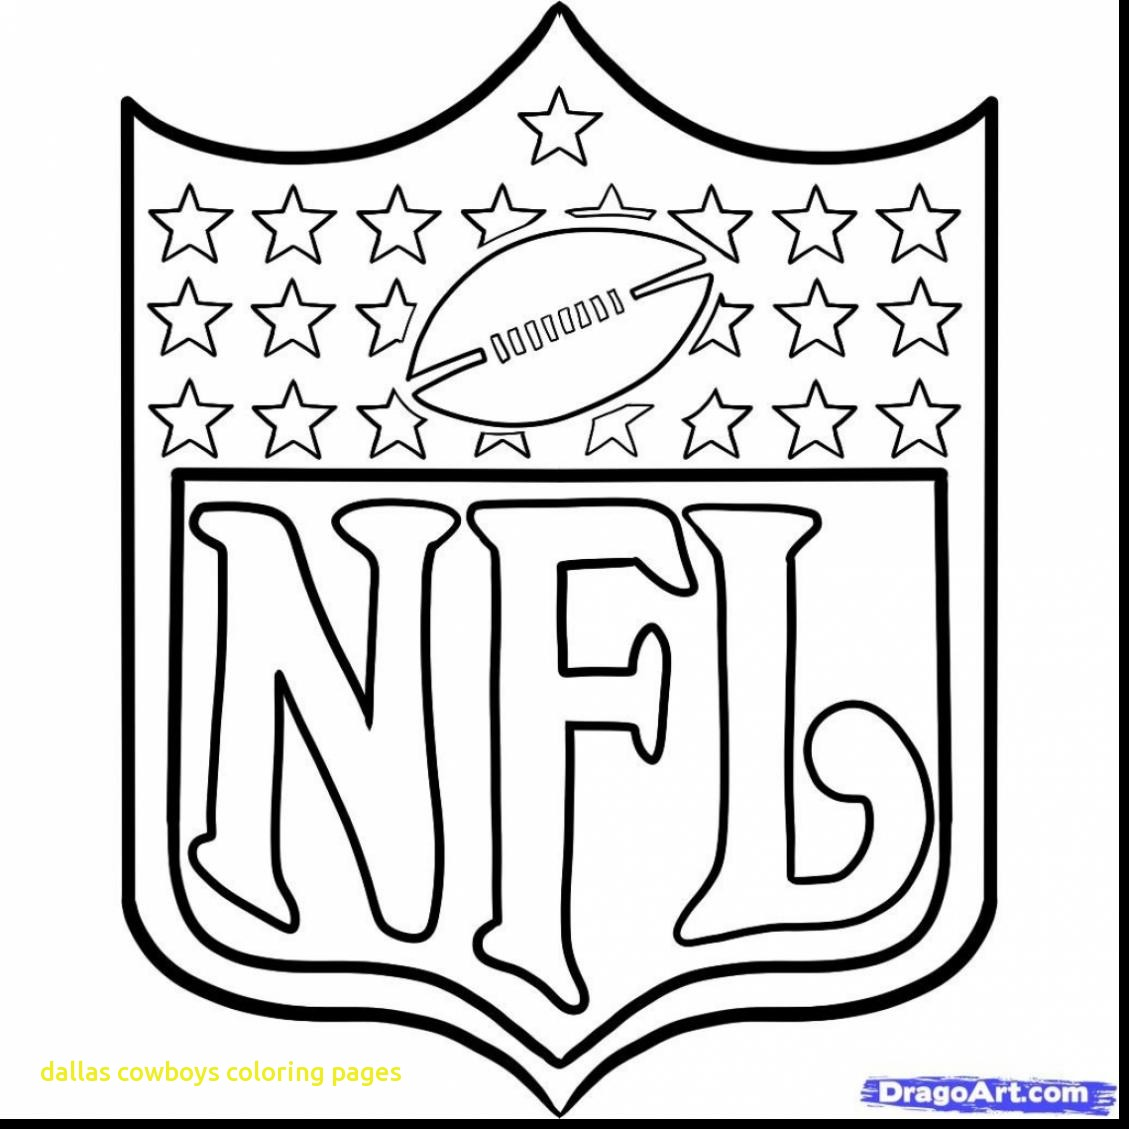 1129x1129 Dallas Cowboys Coloring Pages With Dallas Cowboys Coloring Pages